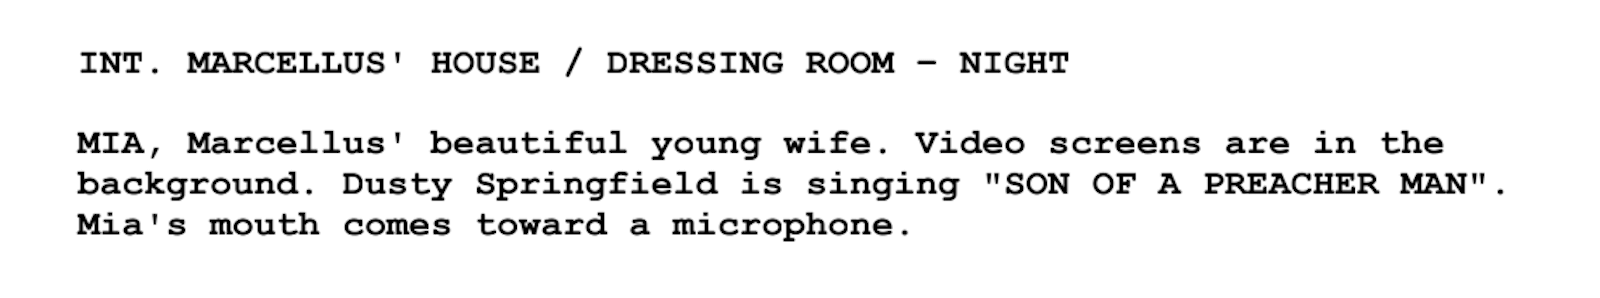 Screenplay Examples - Pulp Fiction Script - Screenplay Snippet 8 - Marcllus house